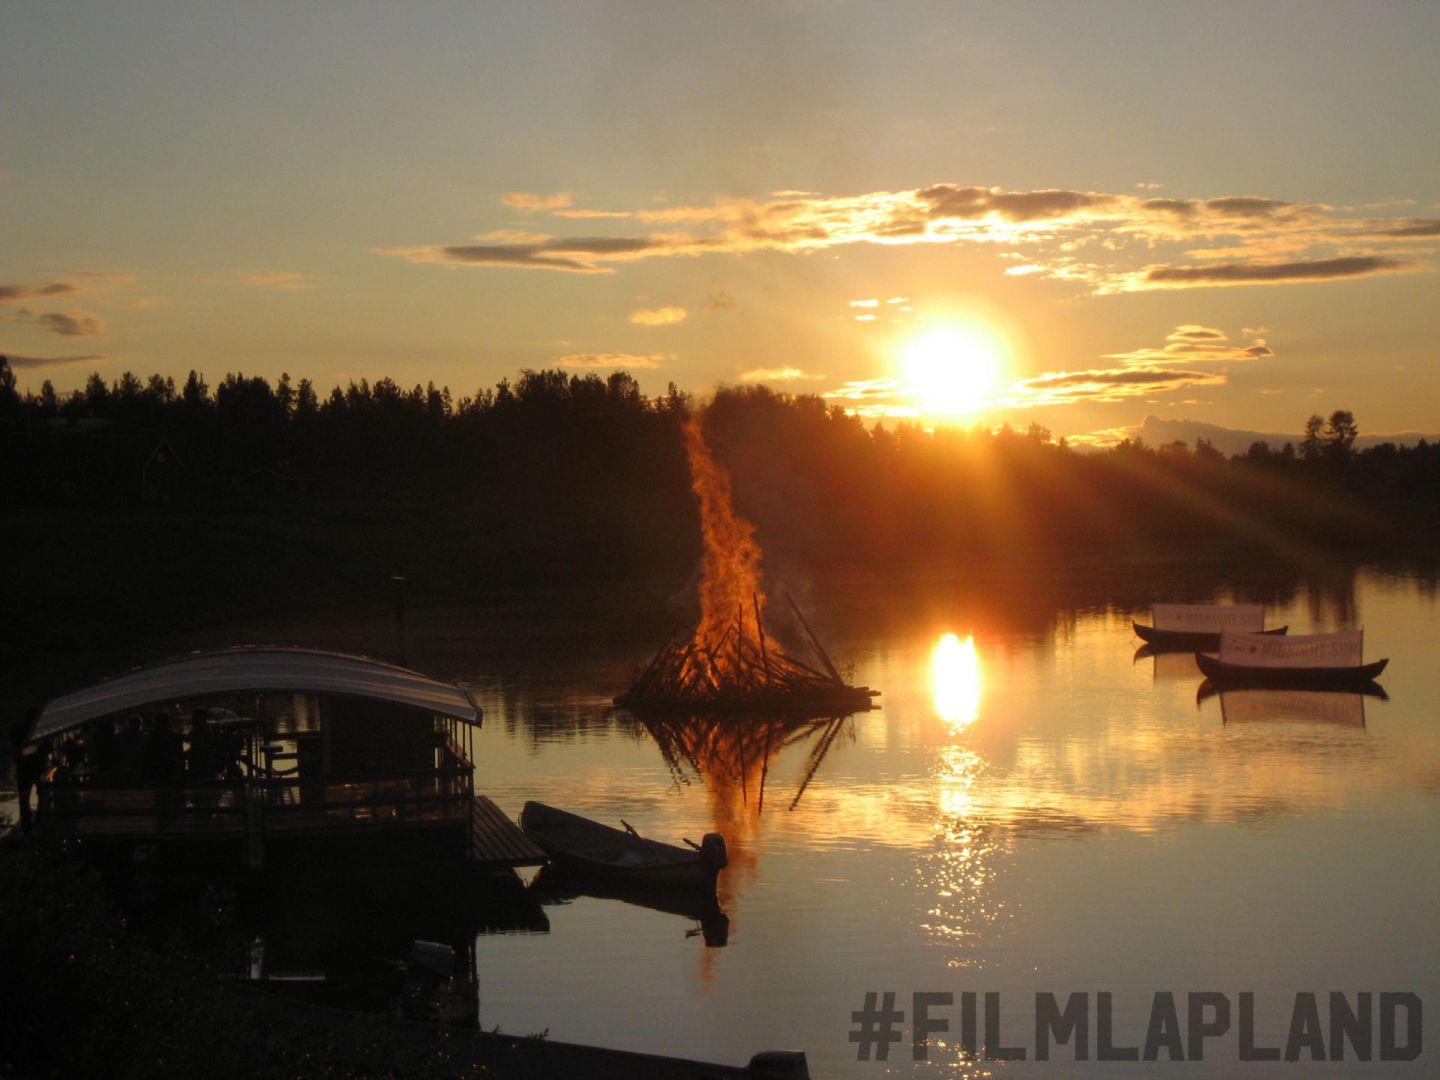 Midnight Sun in Levi in Lapland